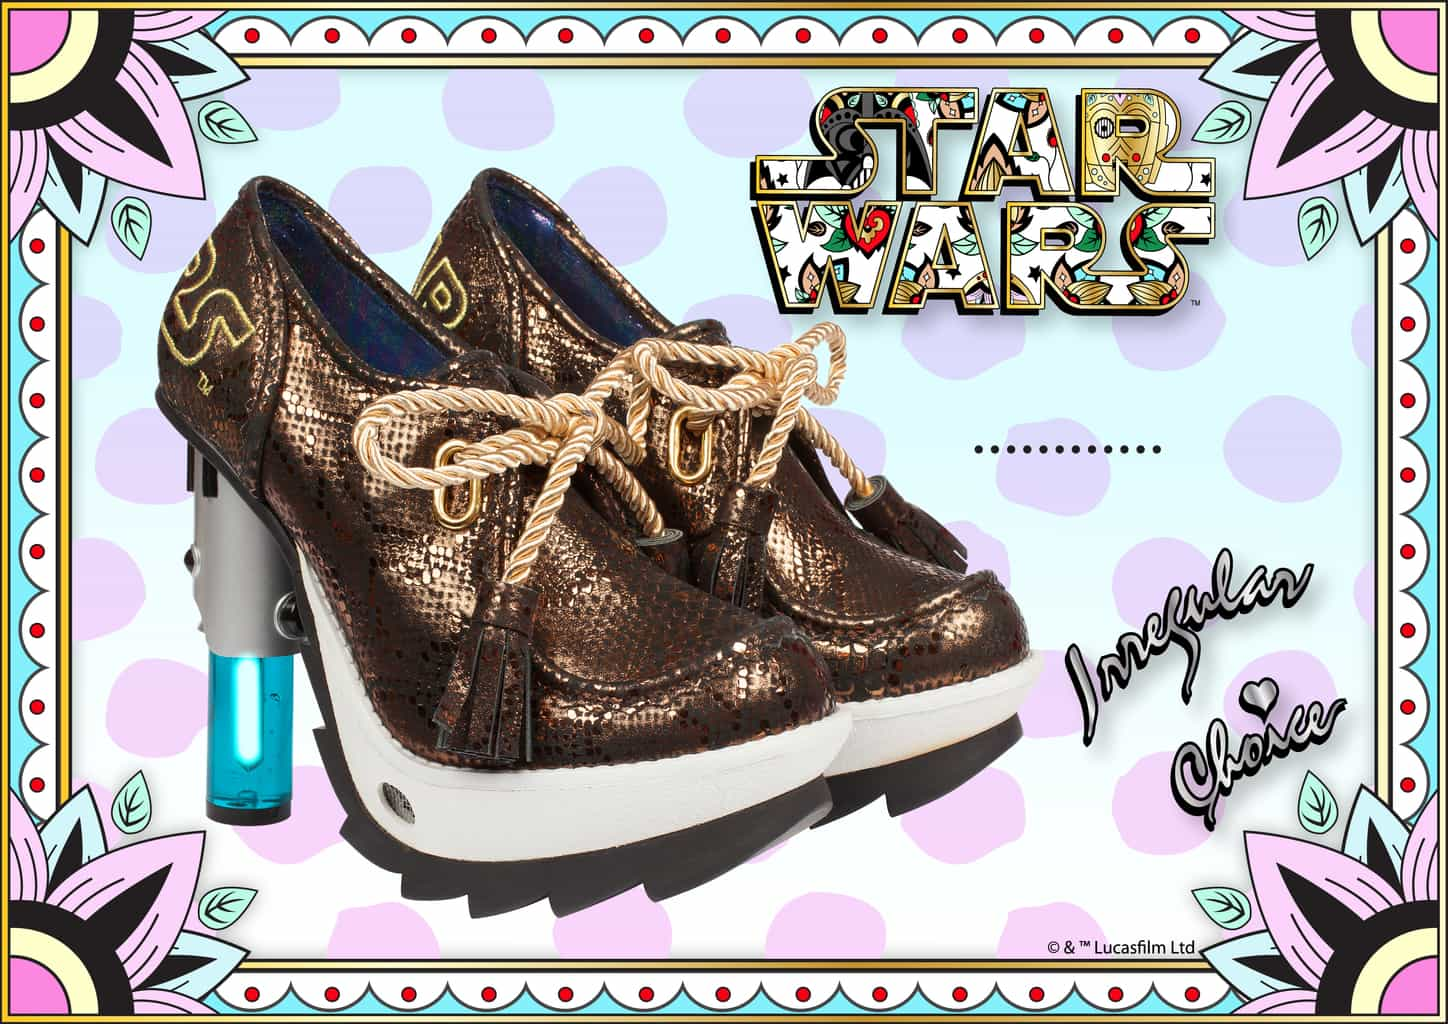 Teaser: A Skywalker Shoe from Irregular Choice!